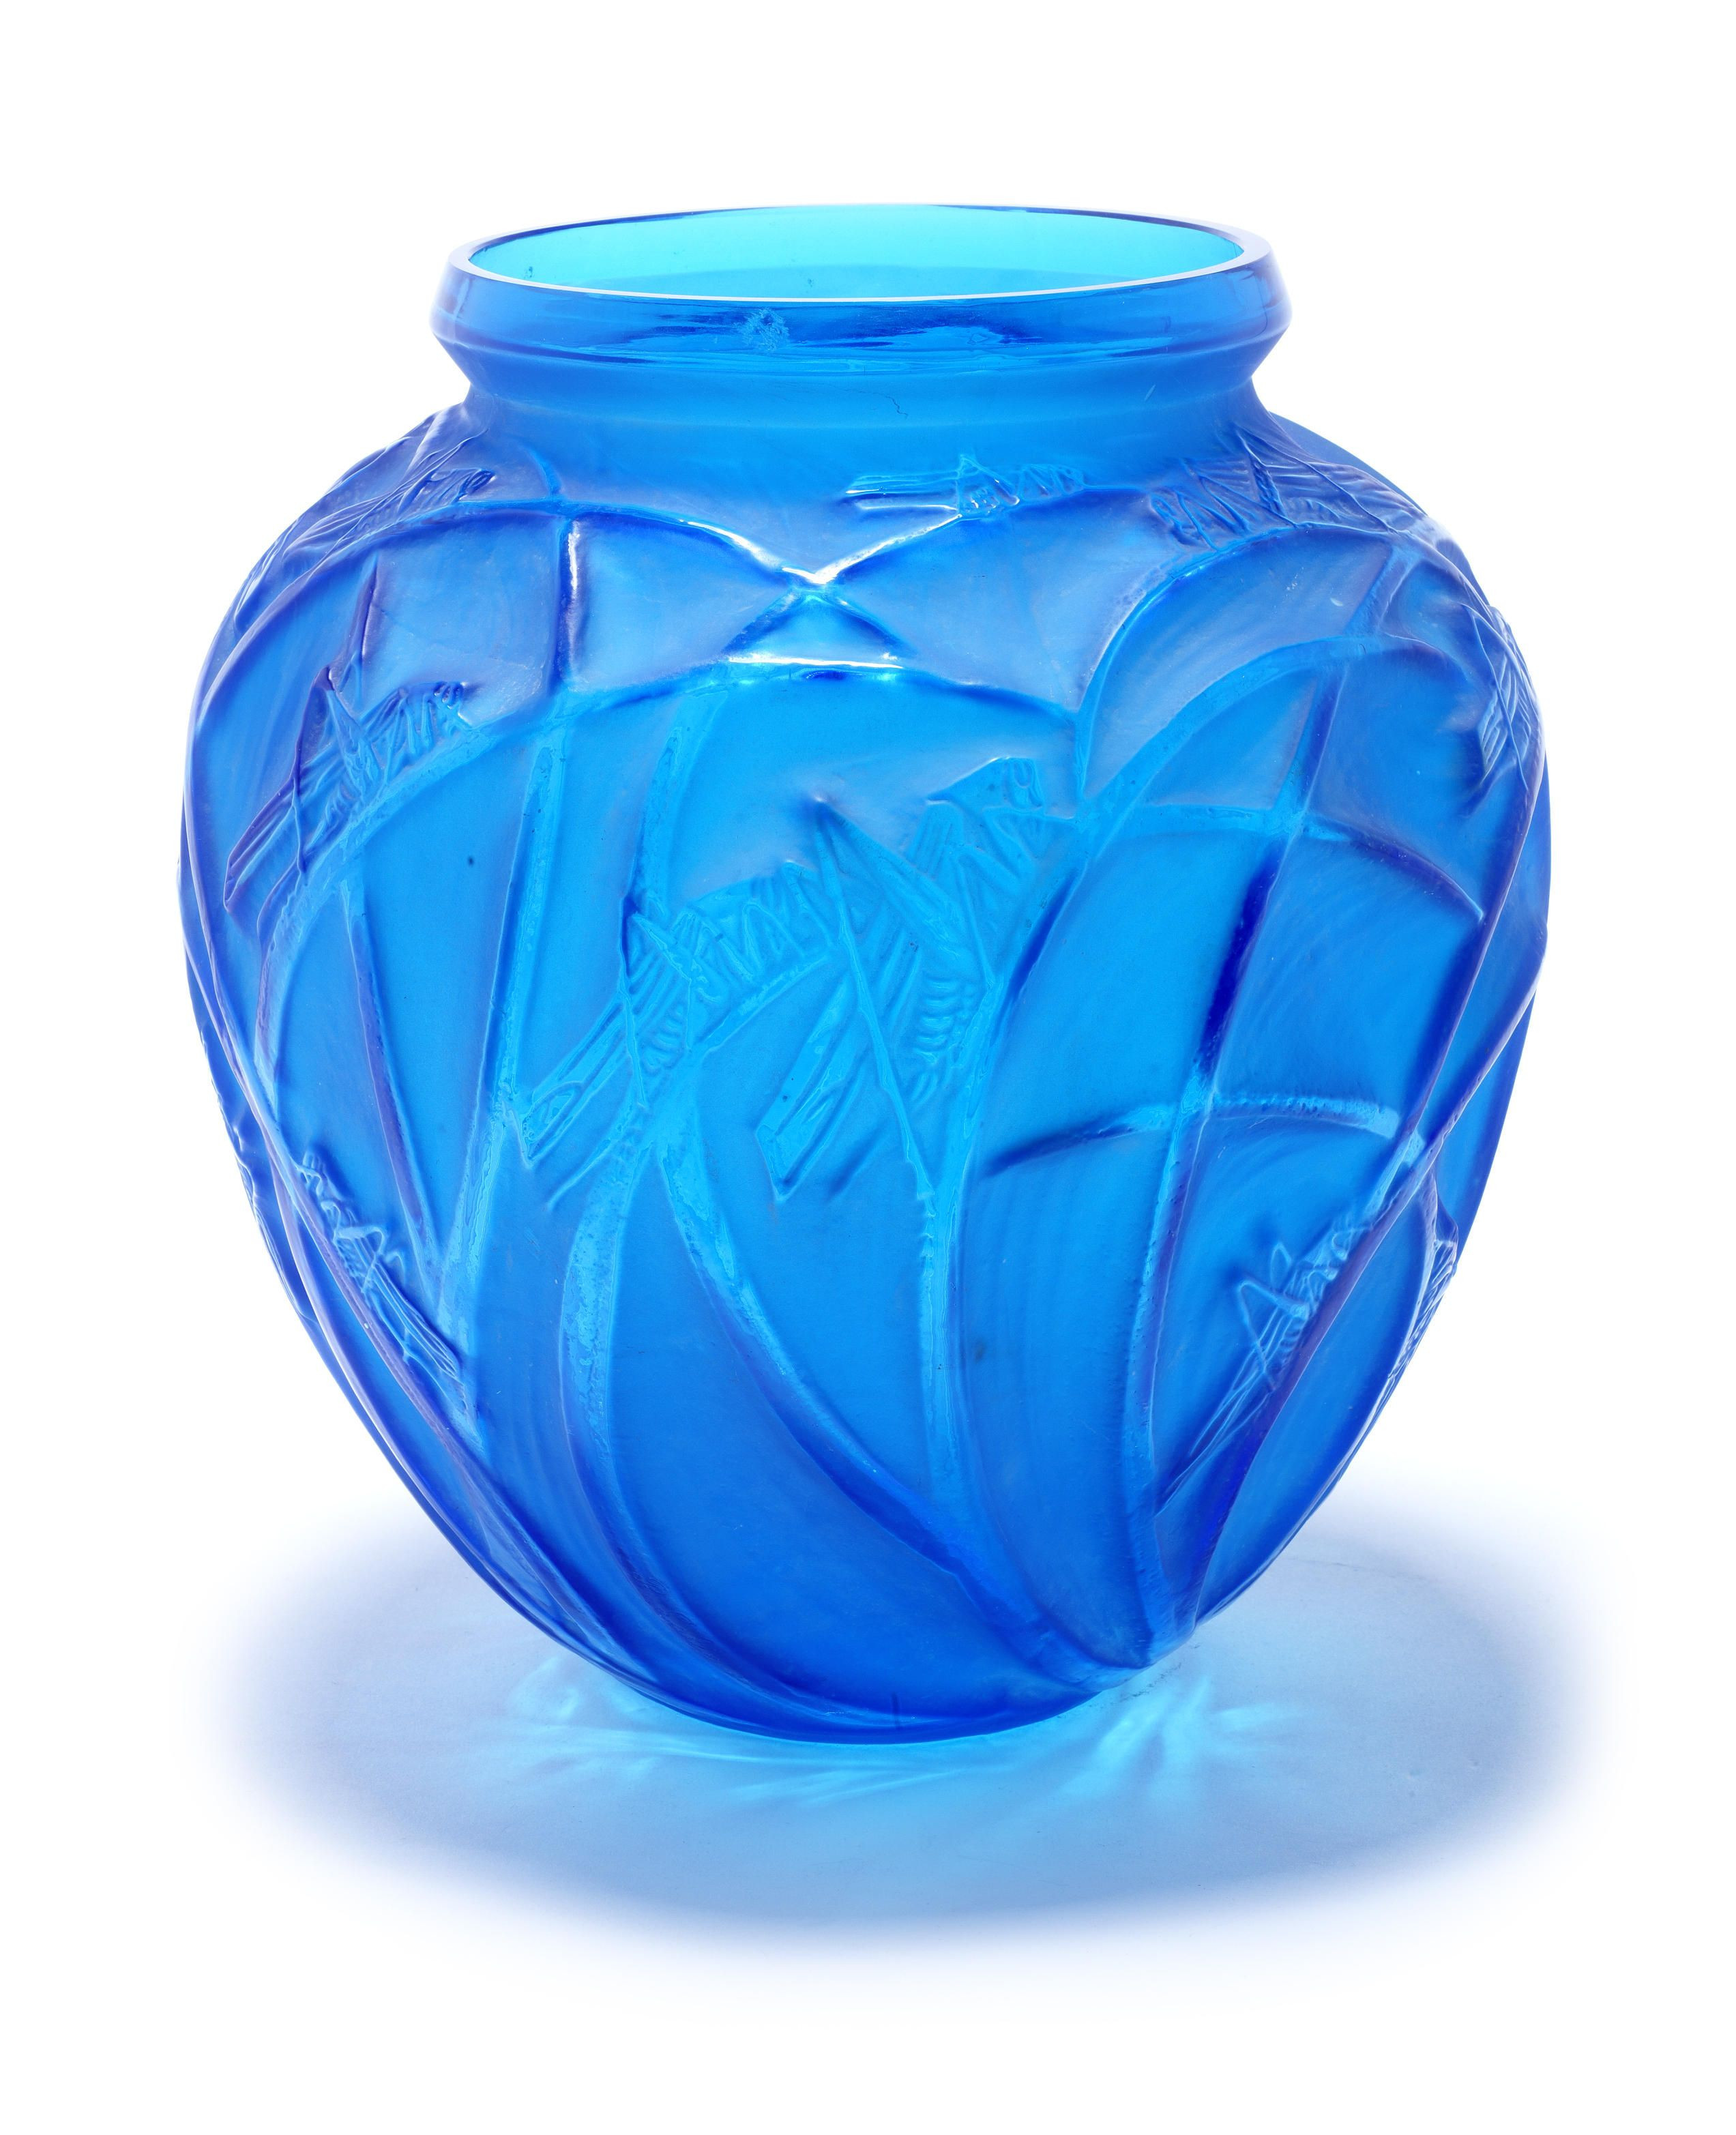 13 Stunning Lalique Glass Vase 2021 free download lalique glass vase of rena lalique sauterelles a vase design 1913 electric blue glass within rena lalique sauterelles a vase design 1913